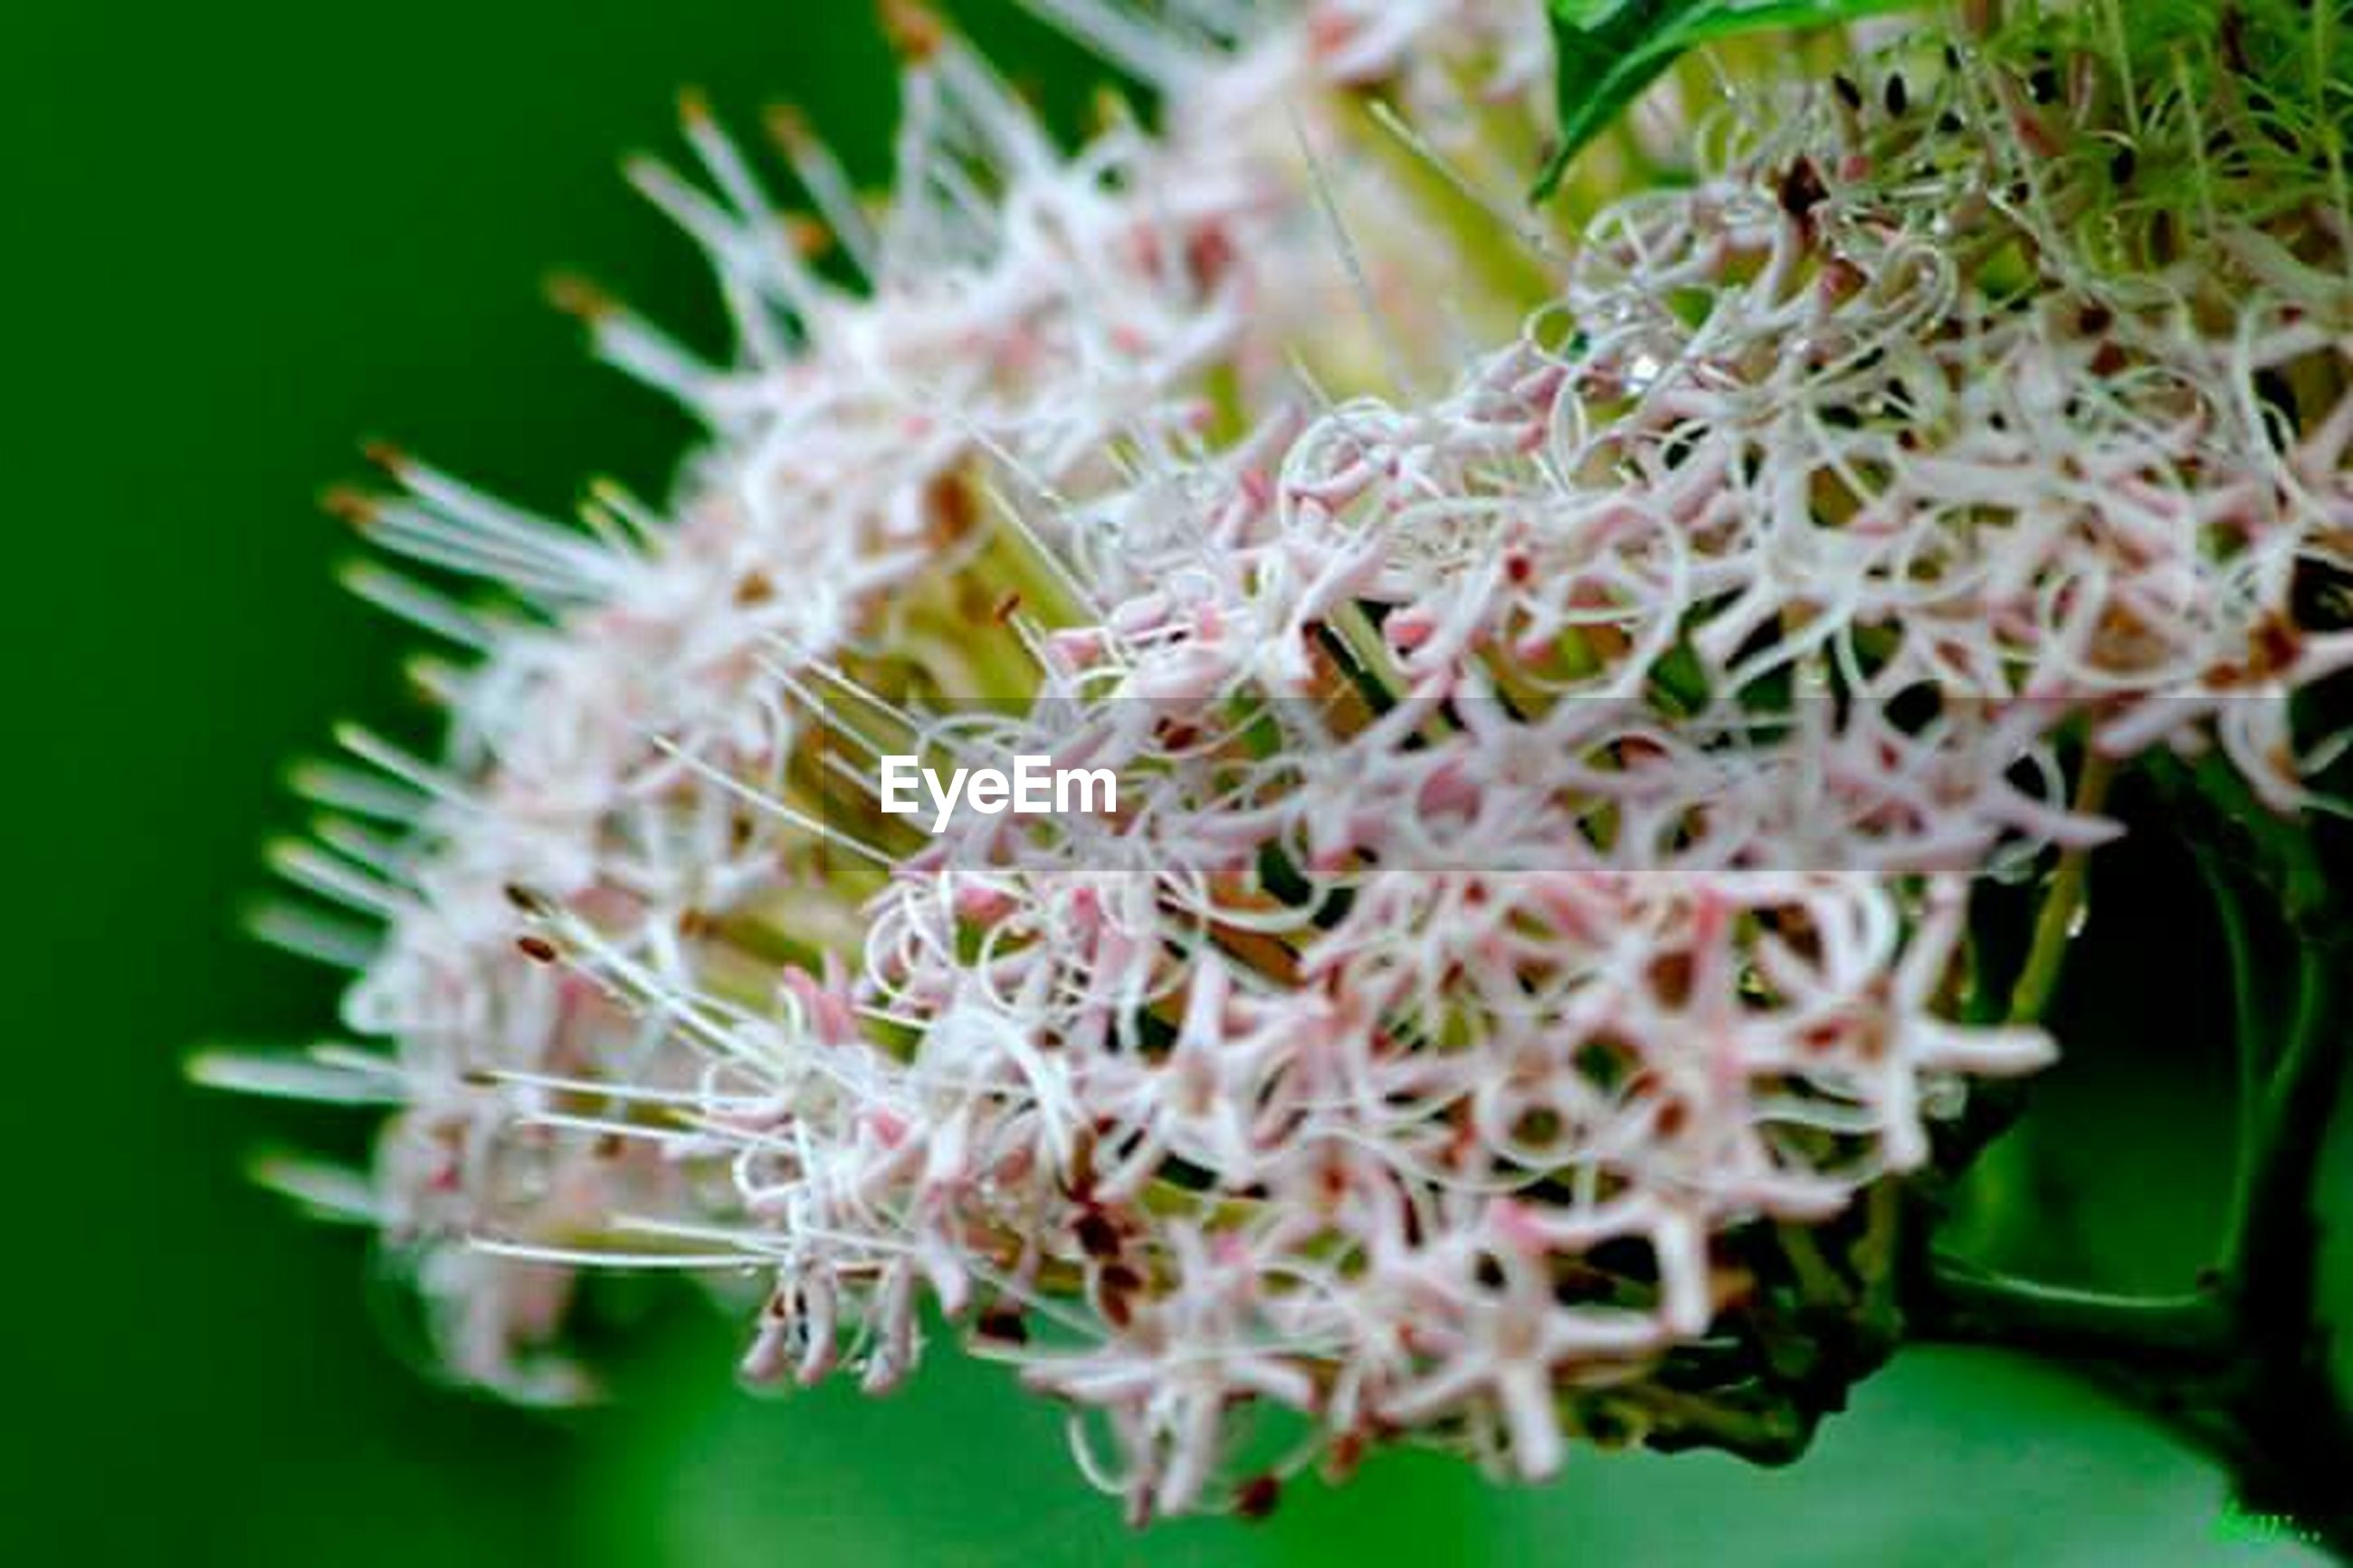 close-up, freshness, focus on foreground, selective focus, growth, flower, plant, fragility, nature, food and drink, food, white color, green color, no people, leaf, beauty in nature, stem, day, healthy eating, indoors